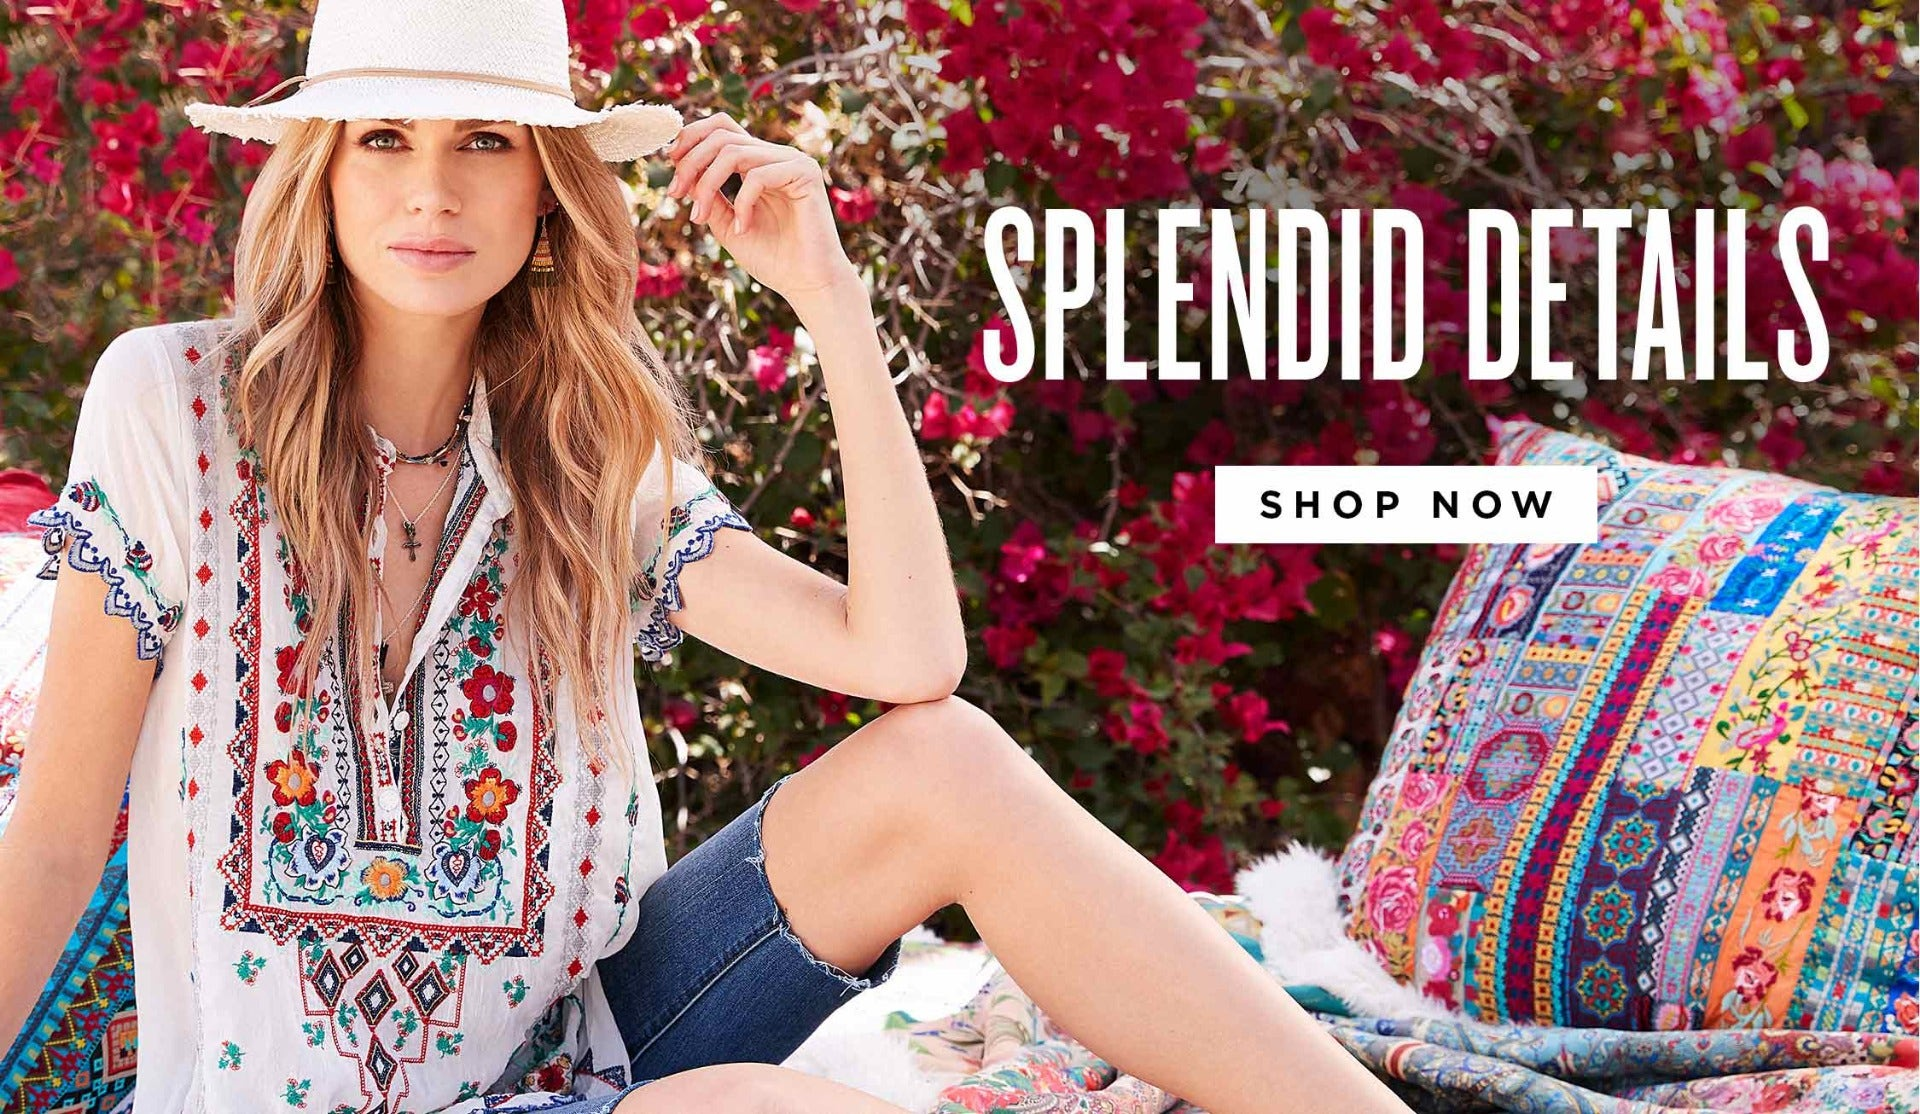 Splendid Details - Shop Now